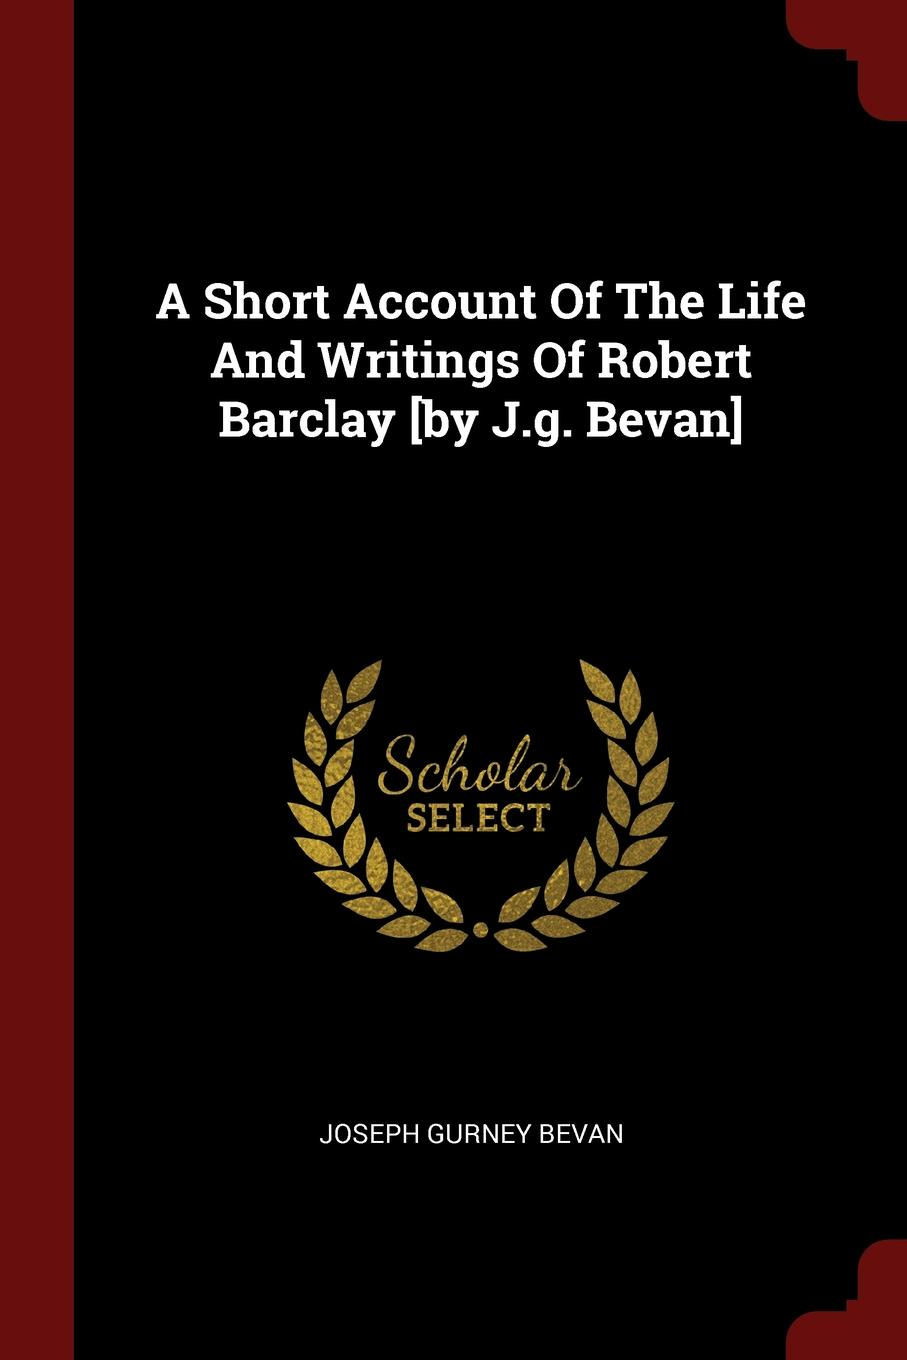 A Short Account Of The Life And Writings Of Robert Barclay .by J.g. Bevan.